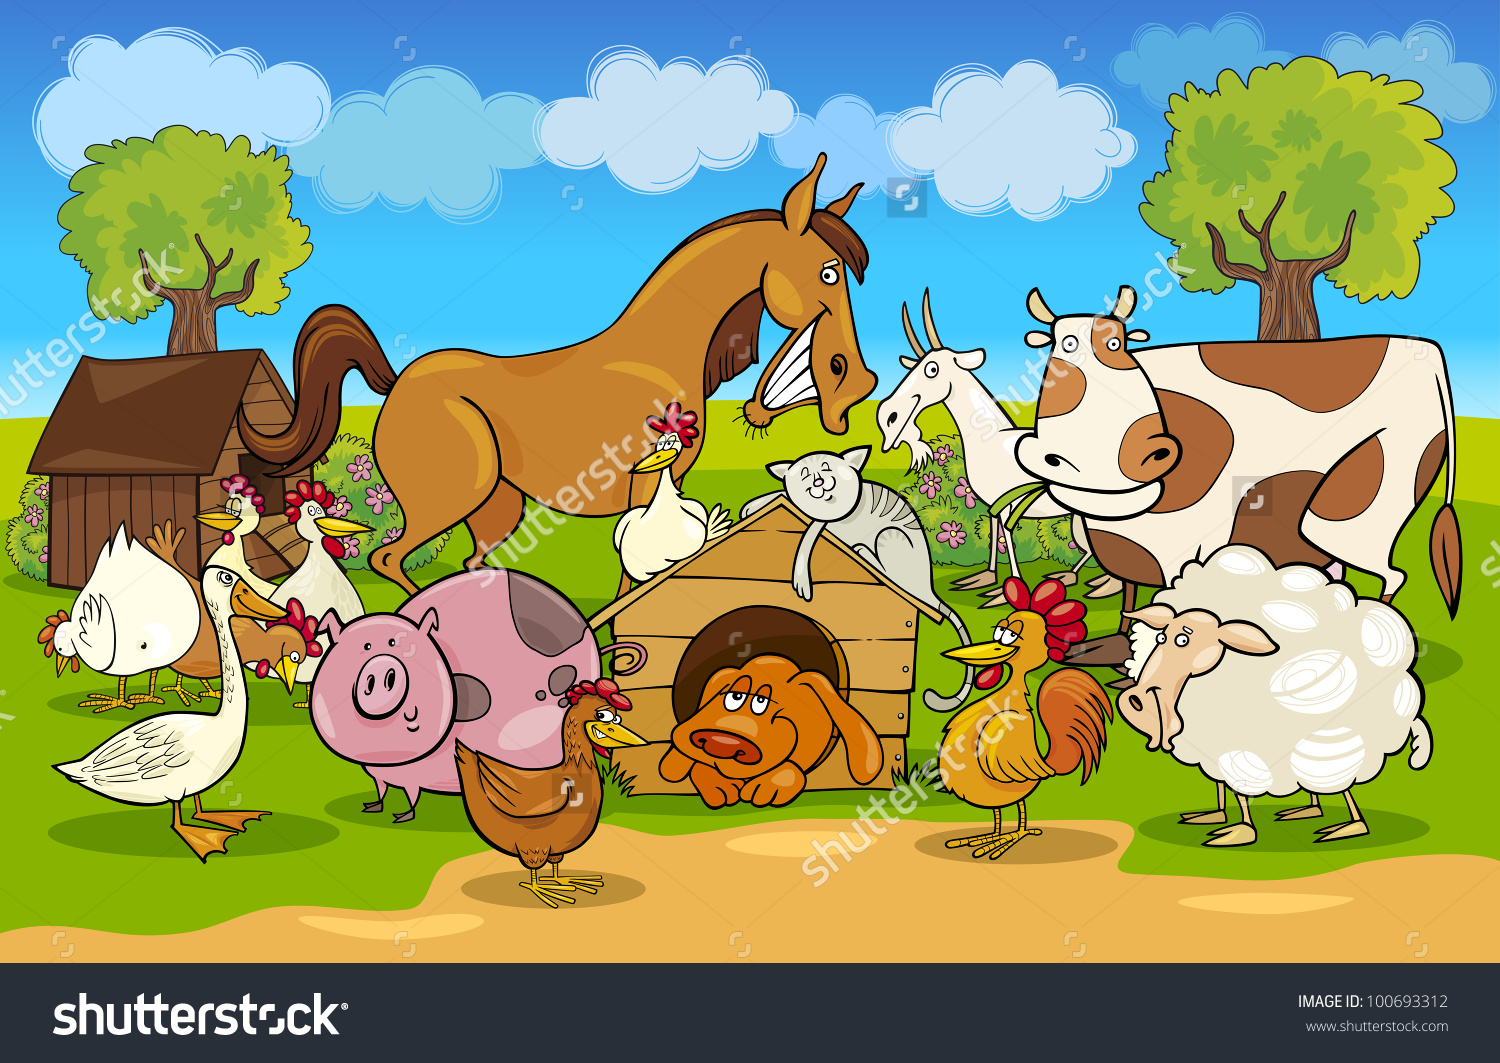 Cartoon Illustration Rural Scene Farm Animals Stock Vector.